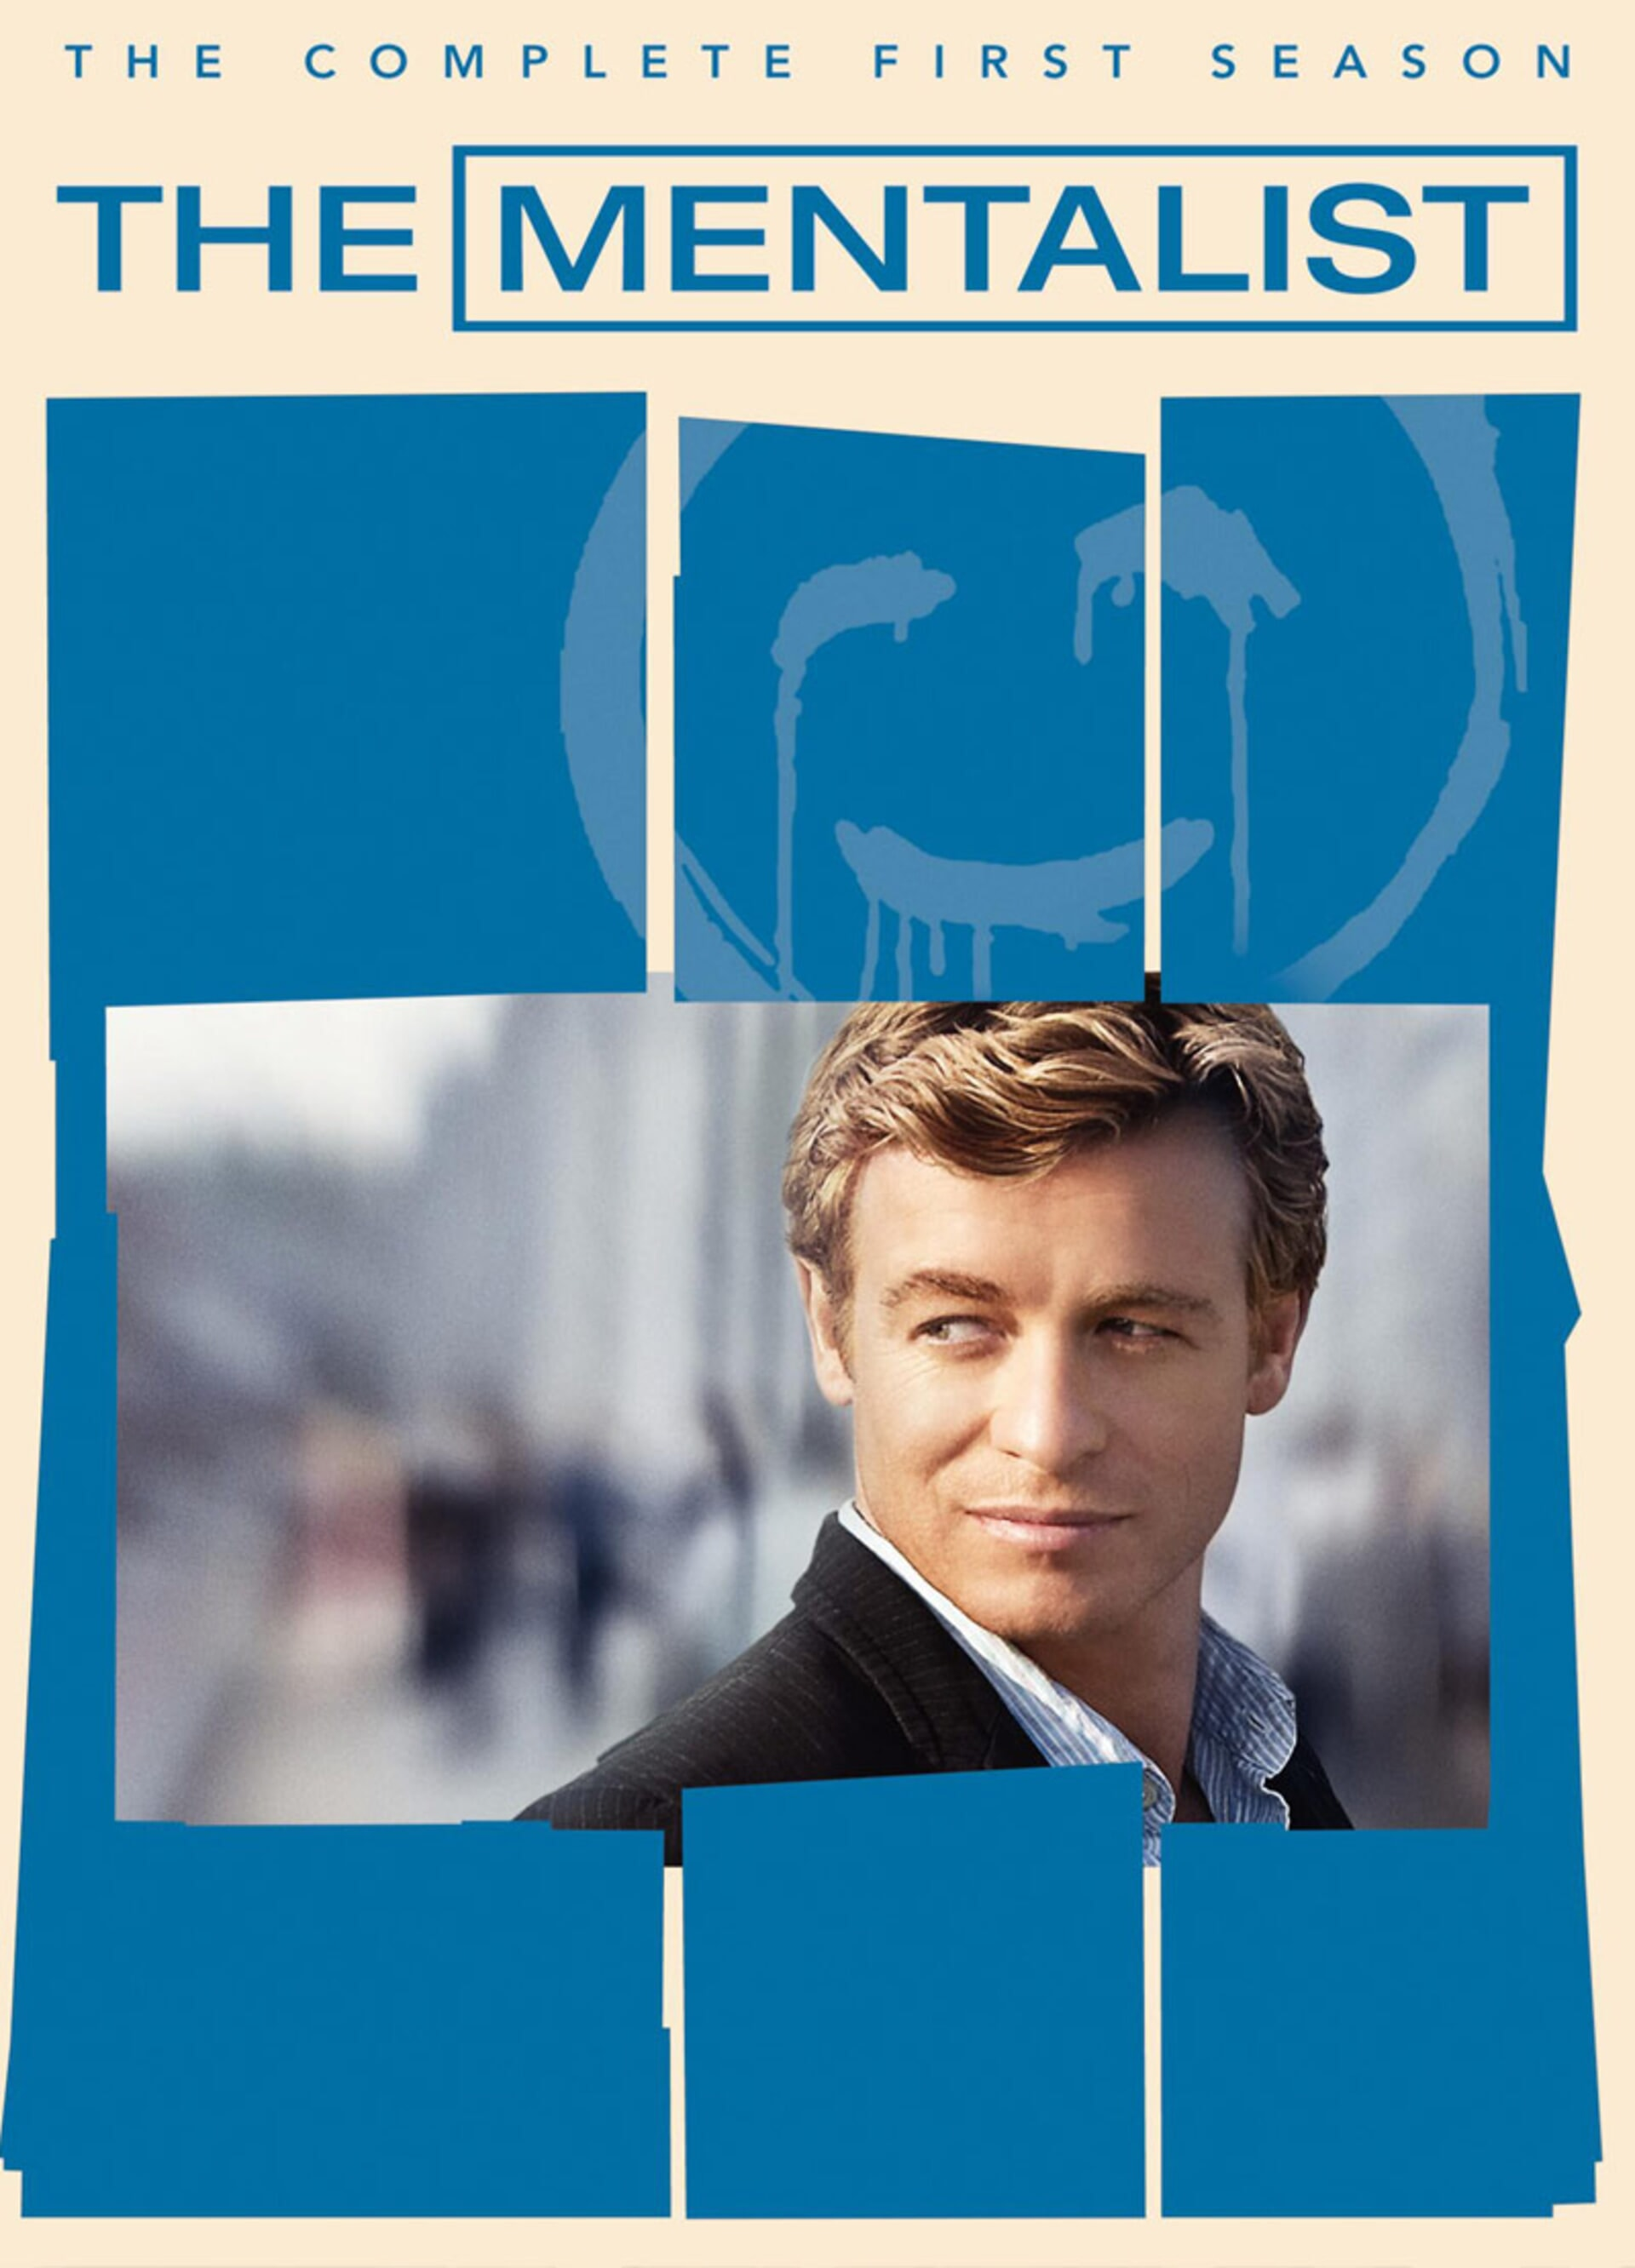 The Mentalist: Season 1 - Poster 1